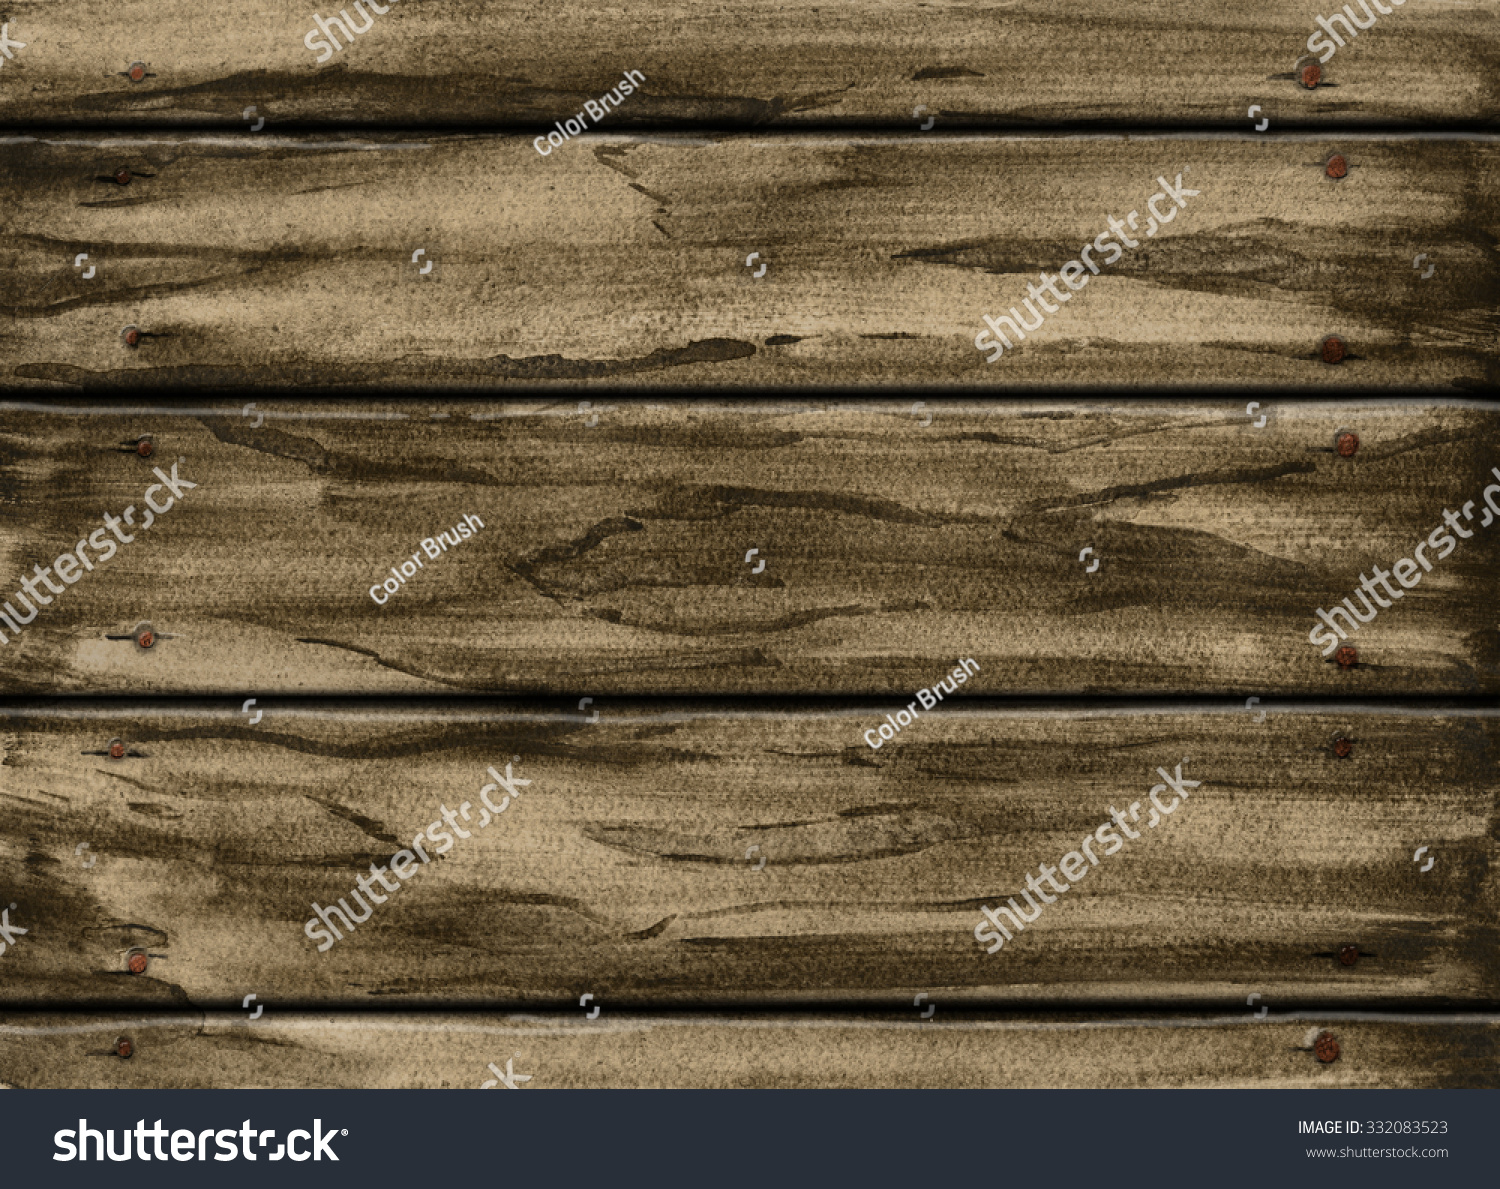 Wood texture wooden plank - Watercolor Wood Texture Wooden Plank Background Hand Painting On Paper